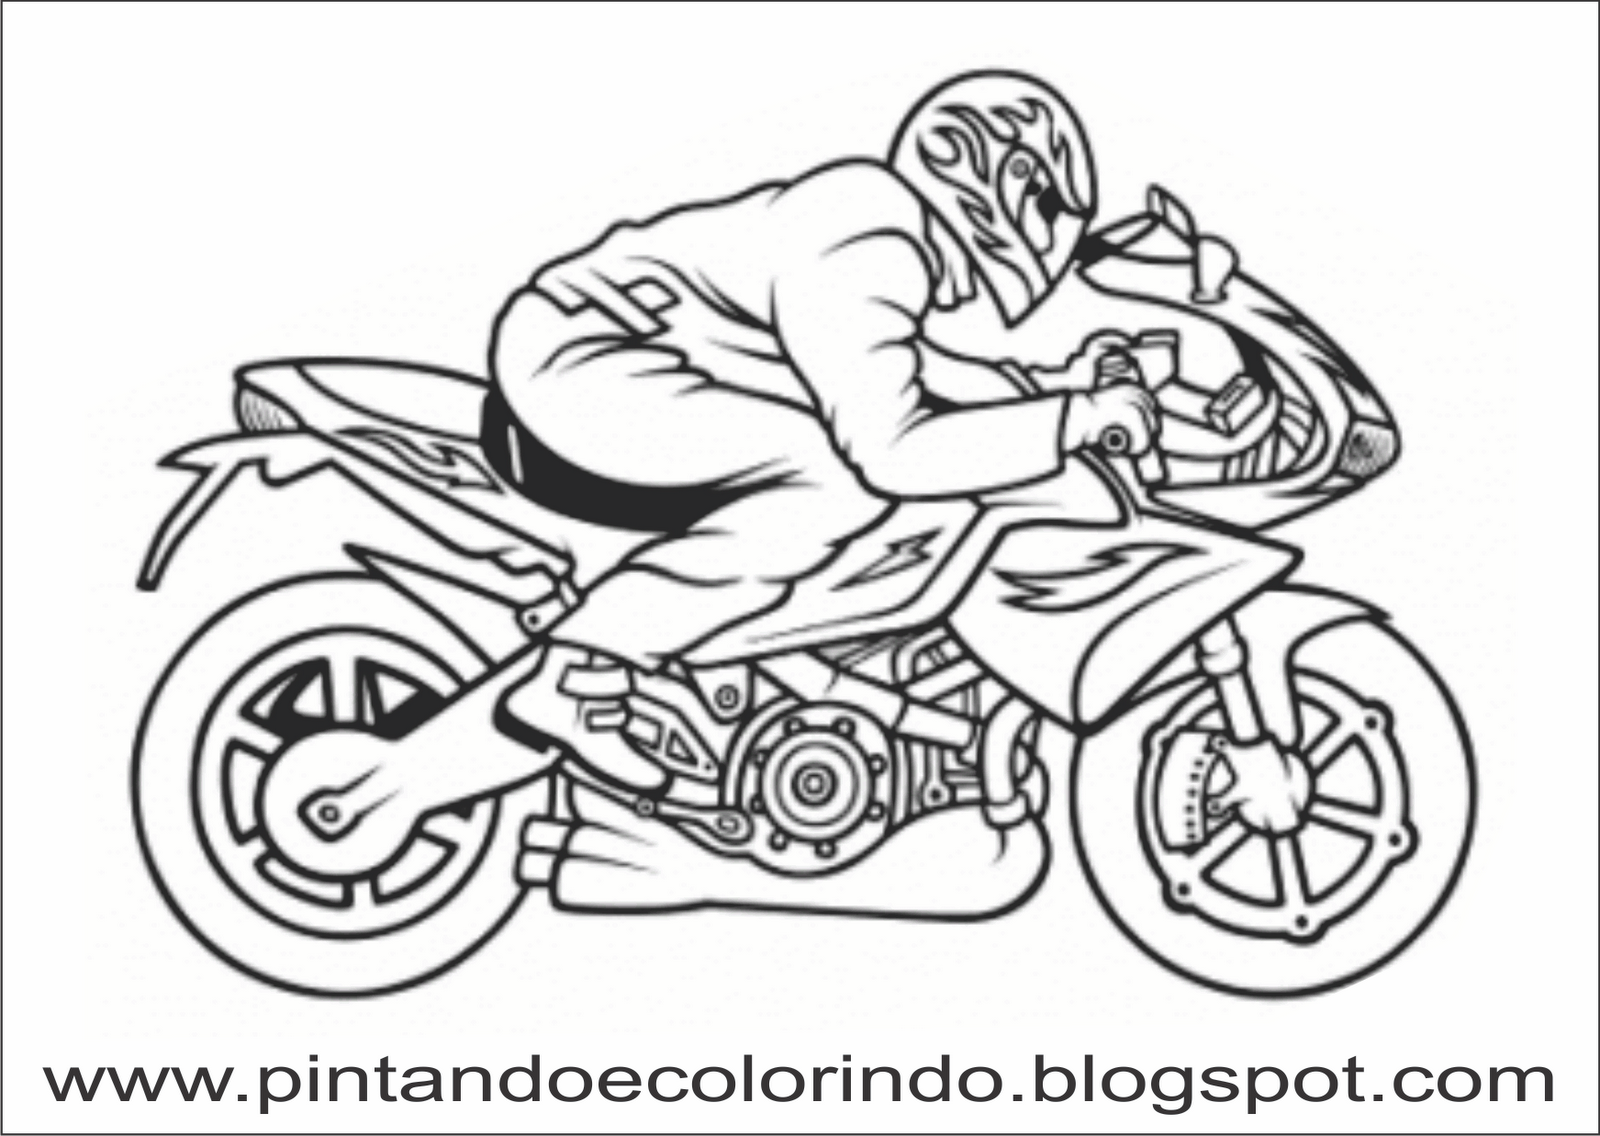 Stock Illustration Sketch Realistic Face Bear Hand Drawn Illustration Doodle Style Engraving Tattoos Image54117588 likewise Traffic congestion also Royalty Free Stock Images Car Wash Image10488209 besides Rip Logo 6817000 furthermore Tranh Anh Mau Phuong Tien Giao Thong Cong Cong Cho. on car illustration